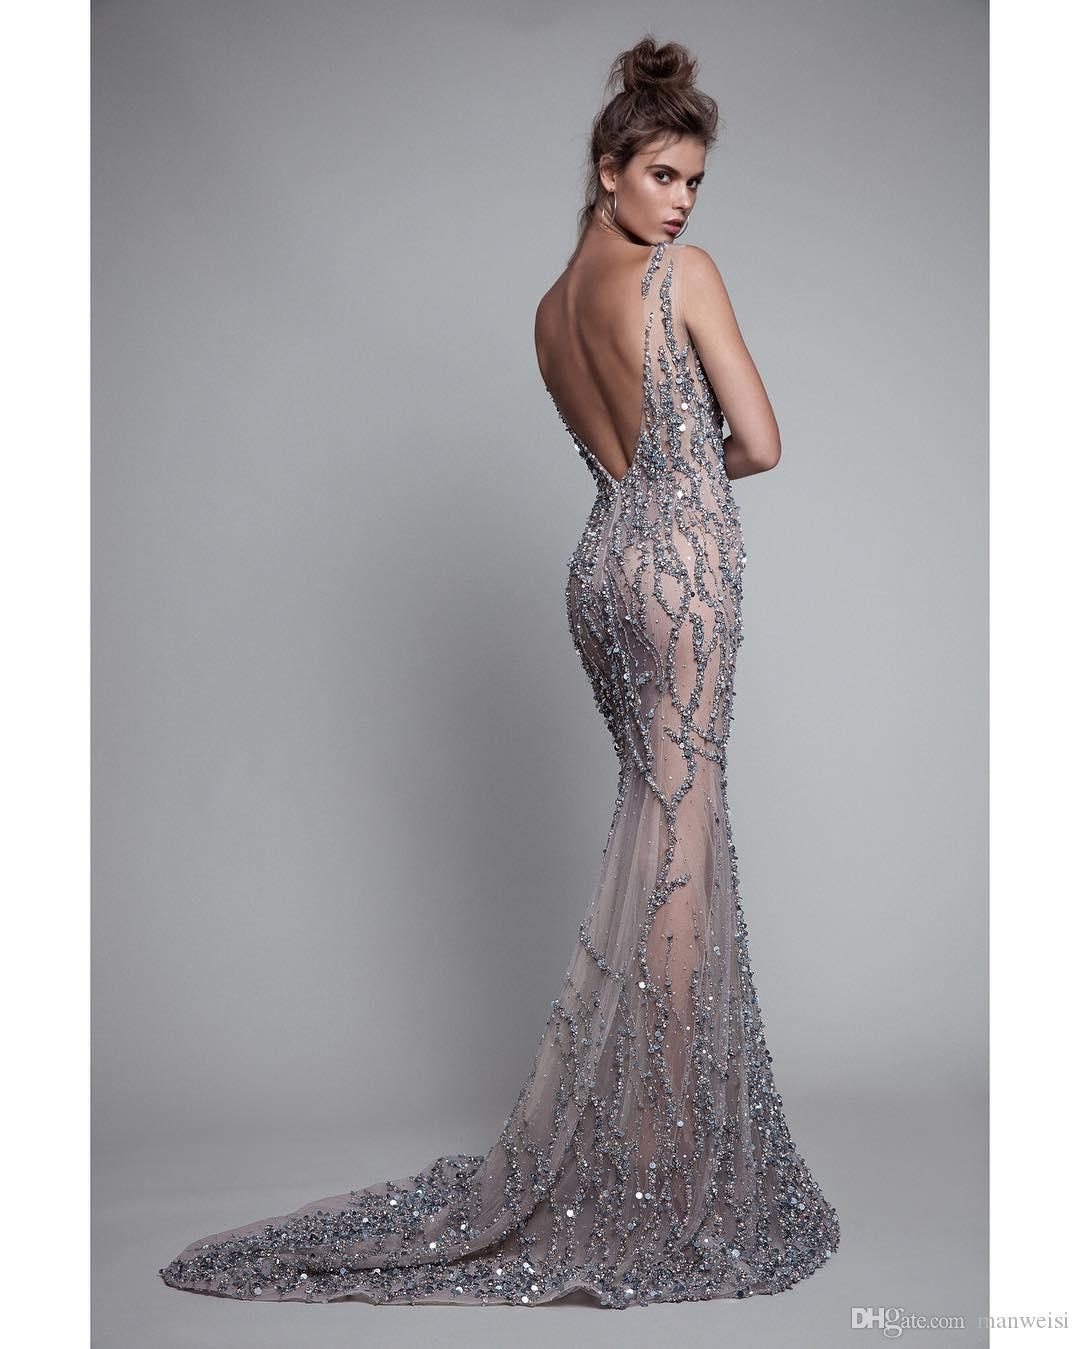 Luxury Berta 2017 Mermaid Evening Dresses Backless Beads Trumpet Prom Gowns Sleeveless Crystal Sequins Sexy Illusion Party Dress